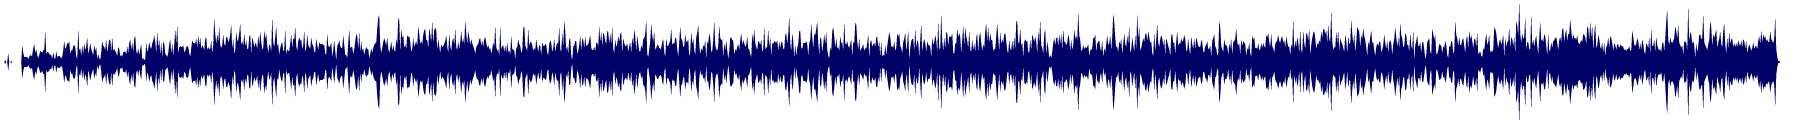 waveform of track #86776